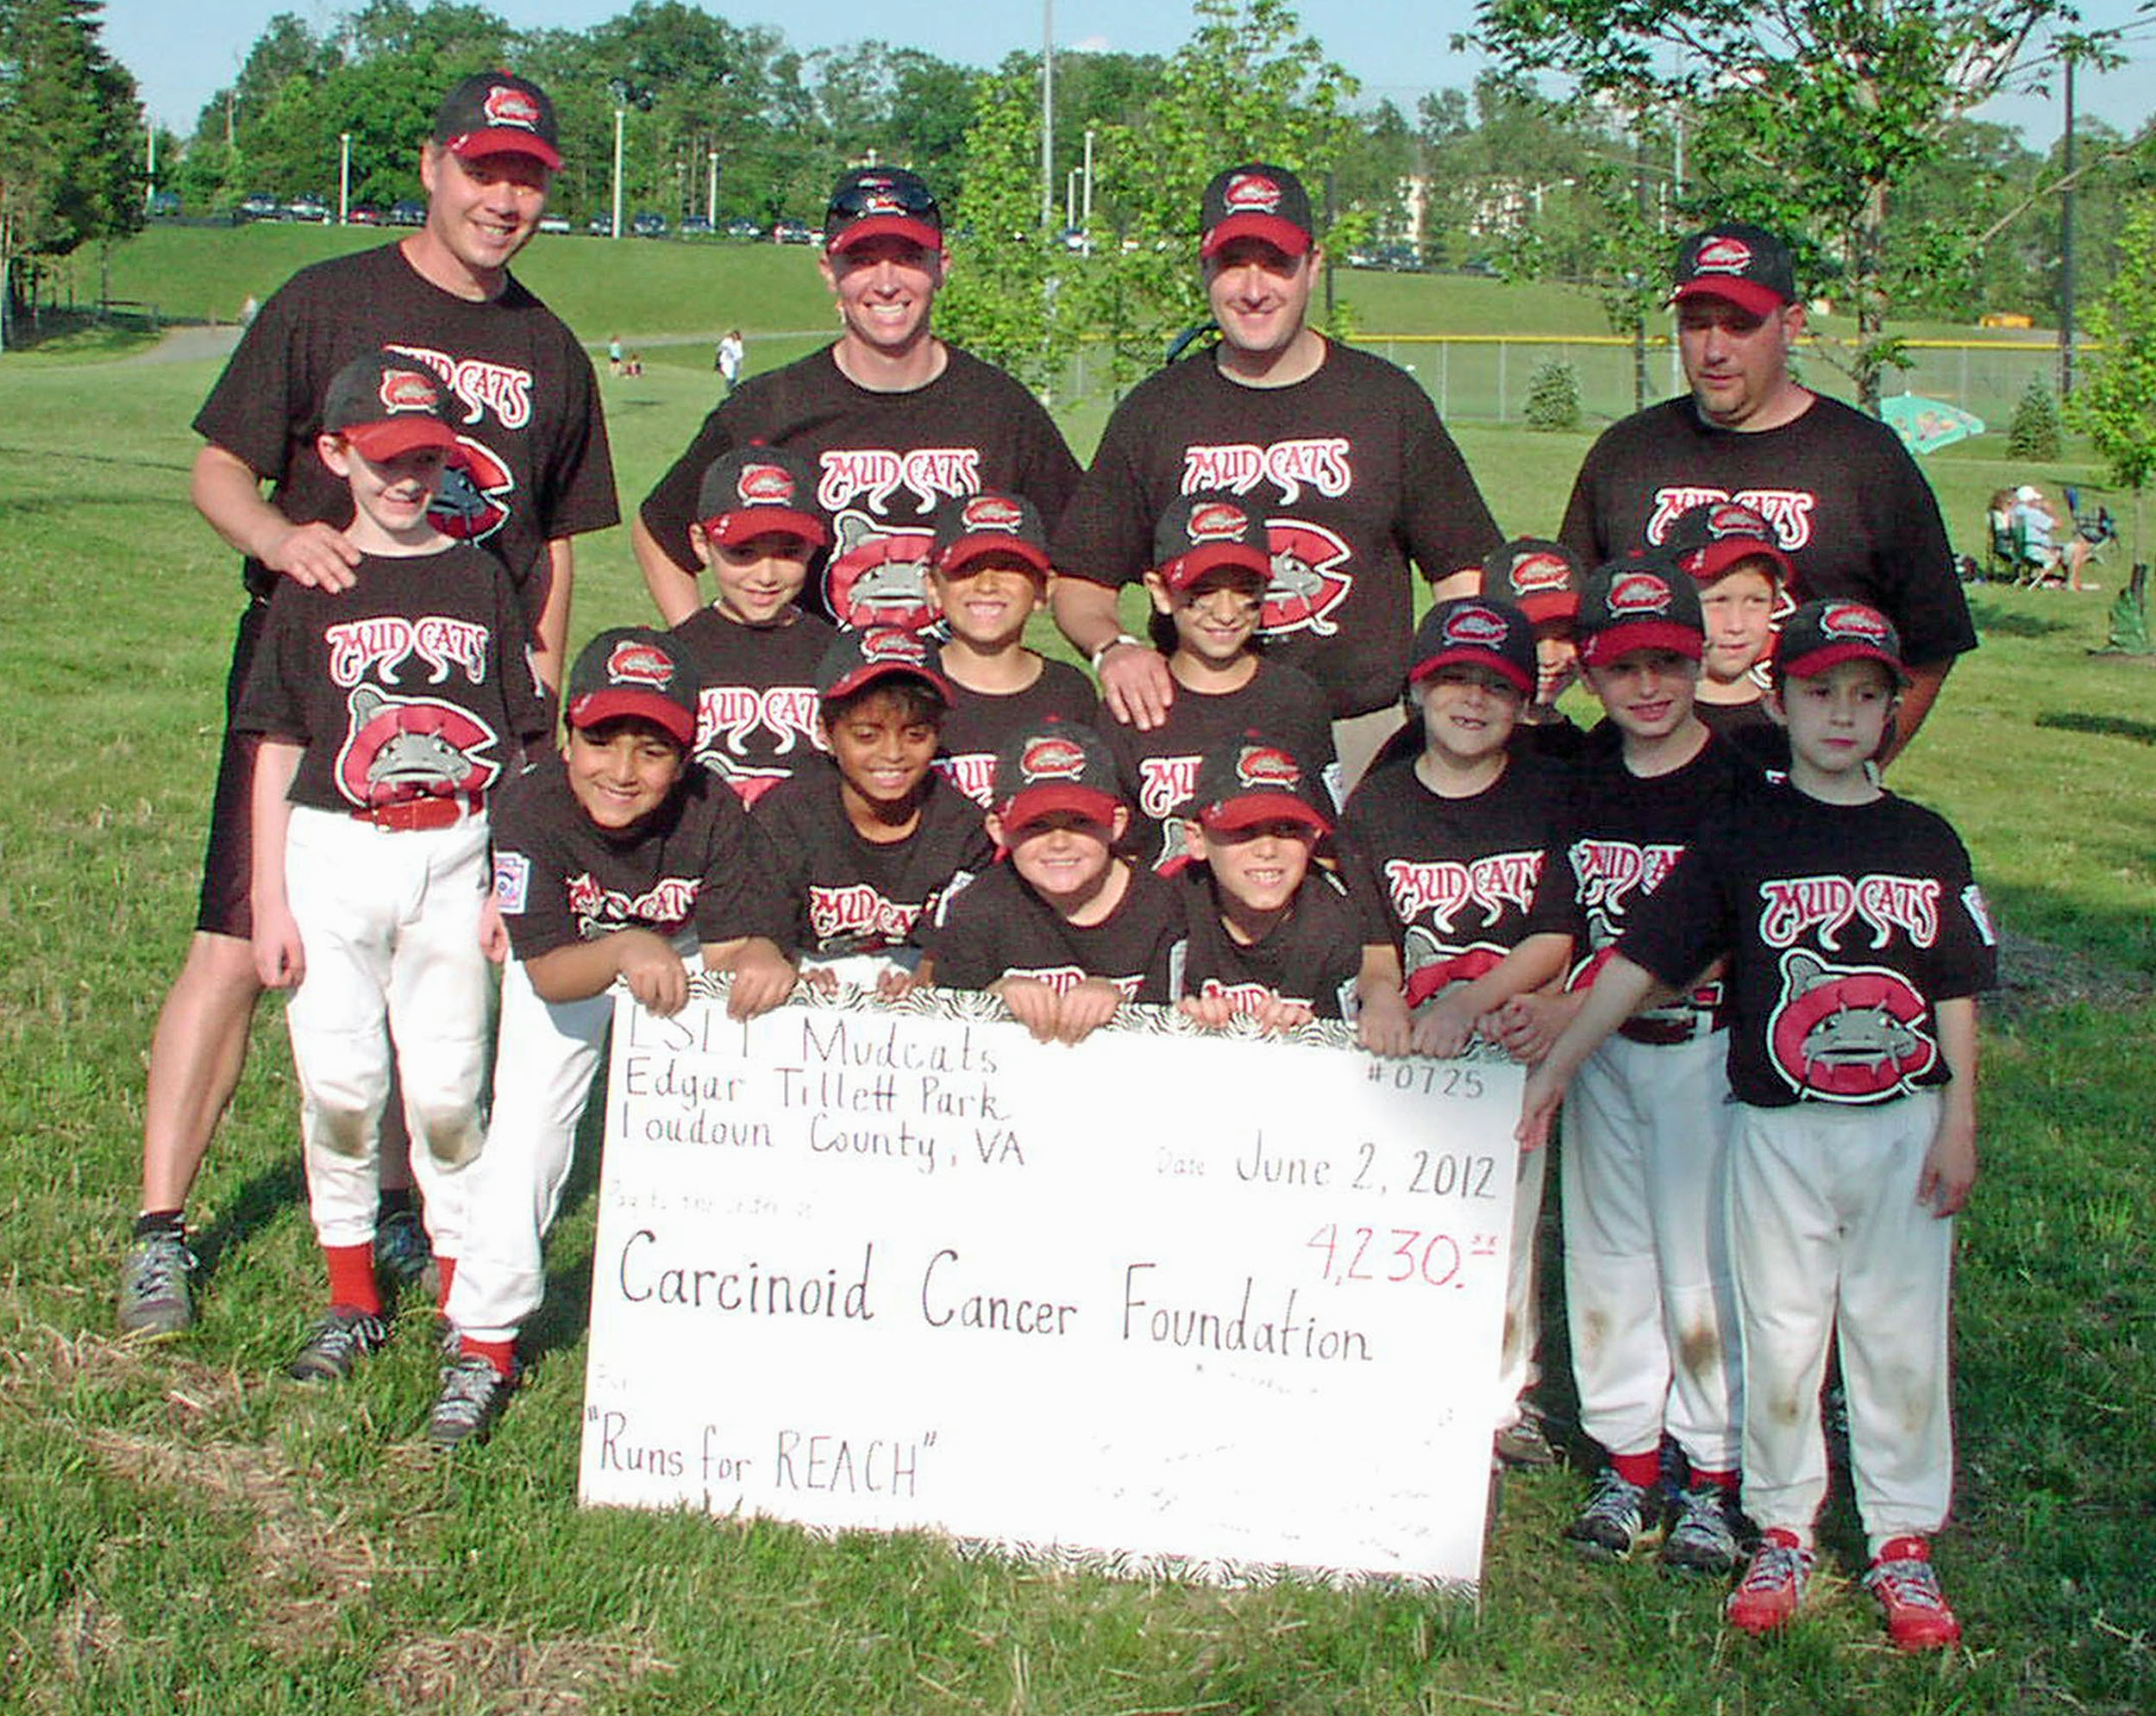 Mud Cats Little League Team Raises Awareness for Carcinoid Cancer and Funds for the Carcinoid Cancer Foundation